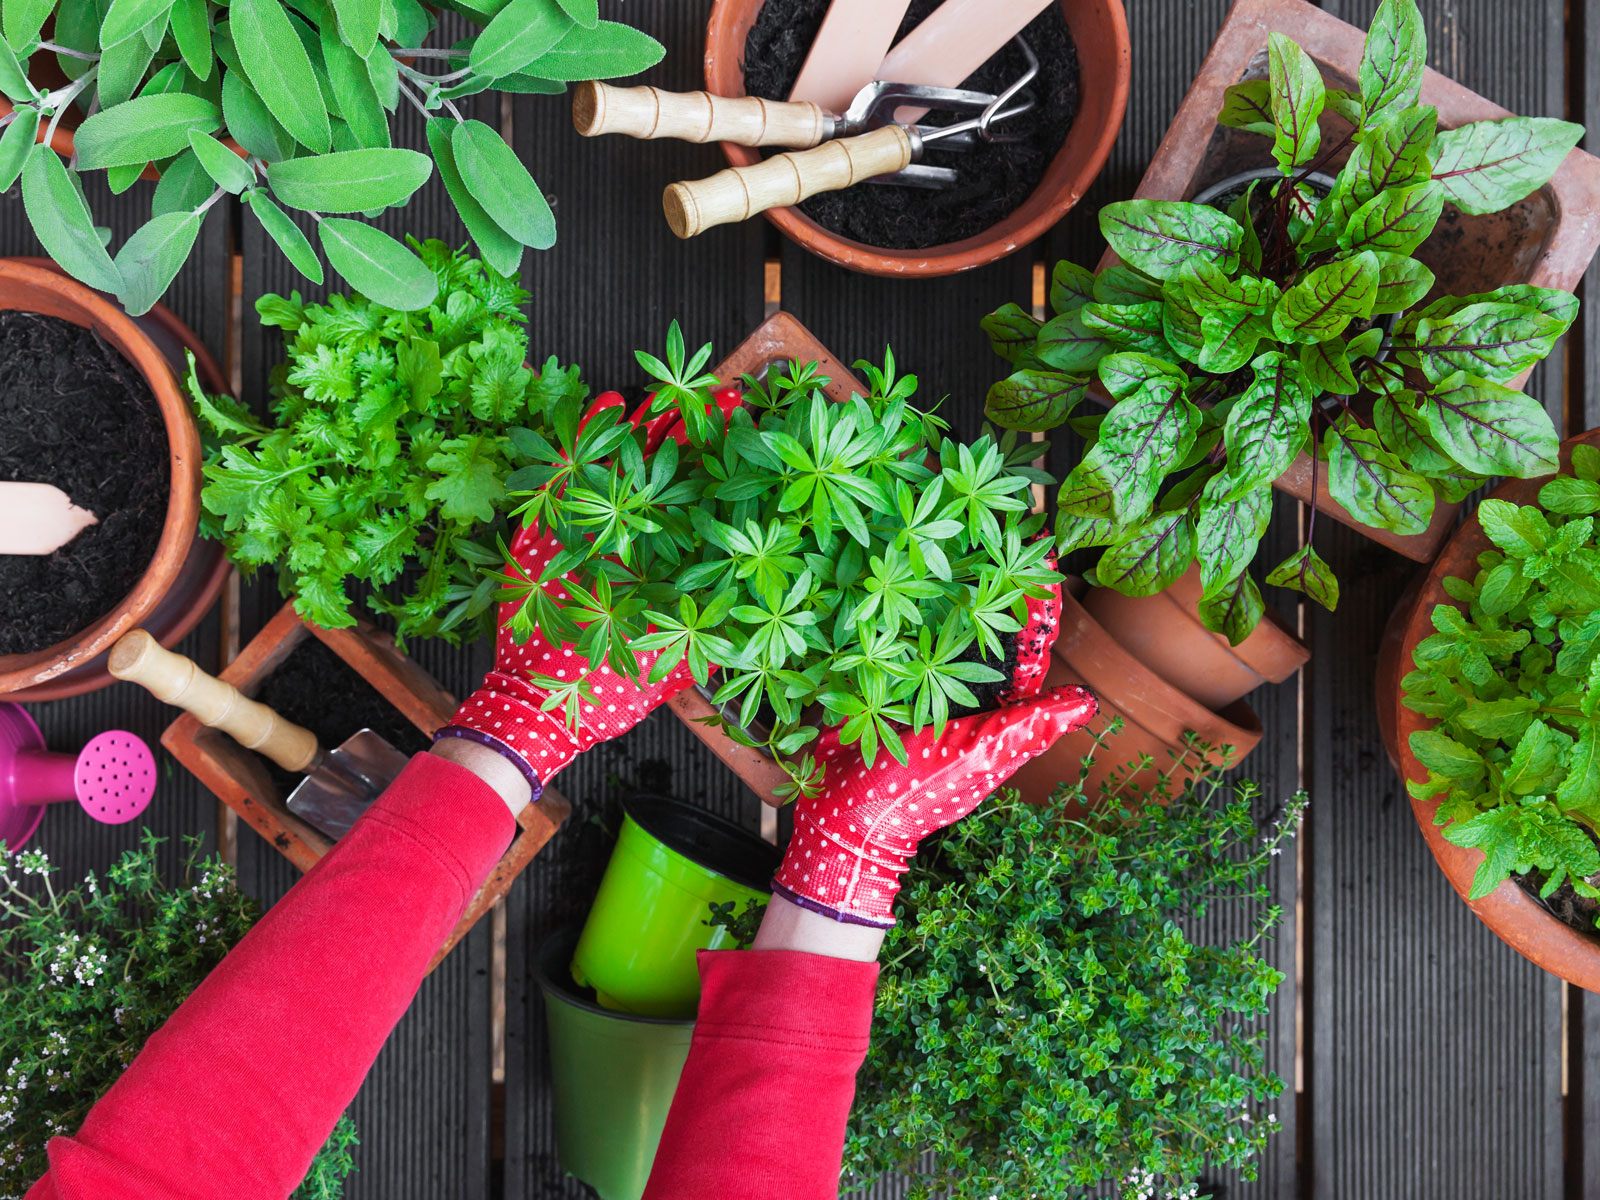 10 Tools You Need to Tend Your Organic Vegetable Garden | Food & Wine